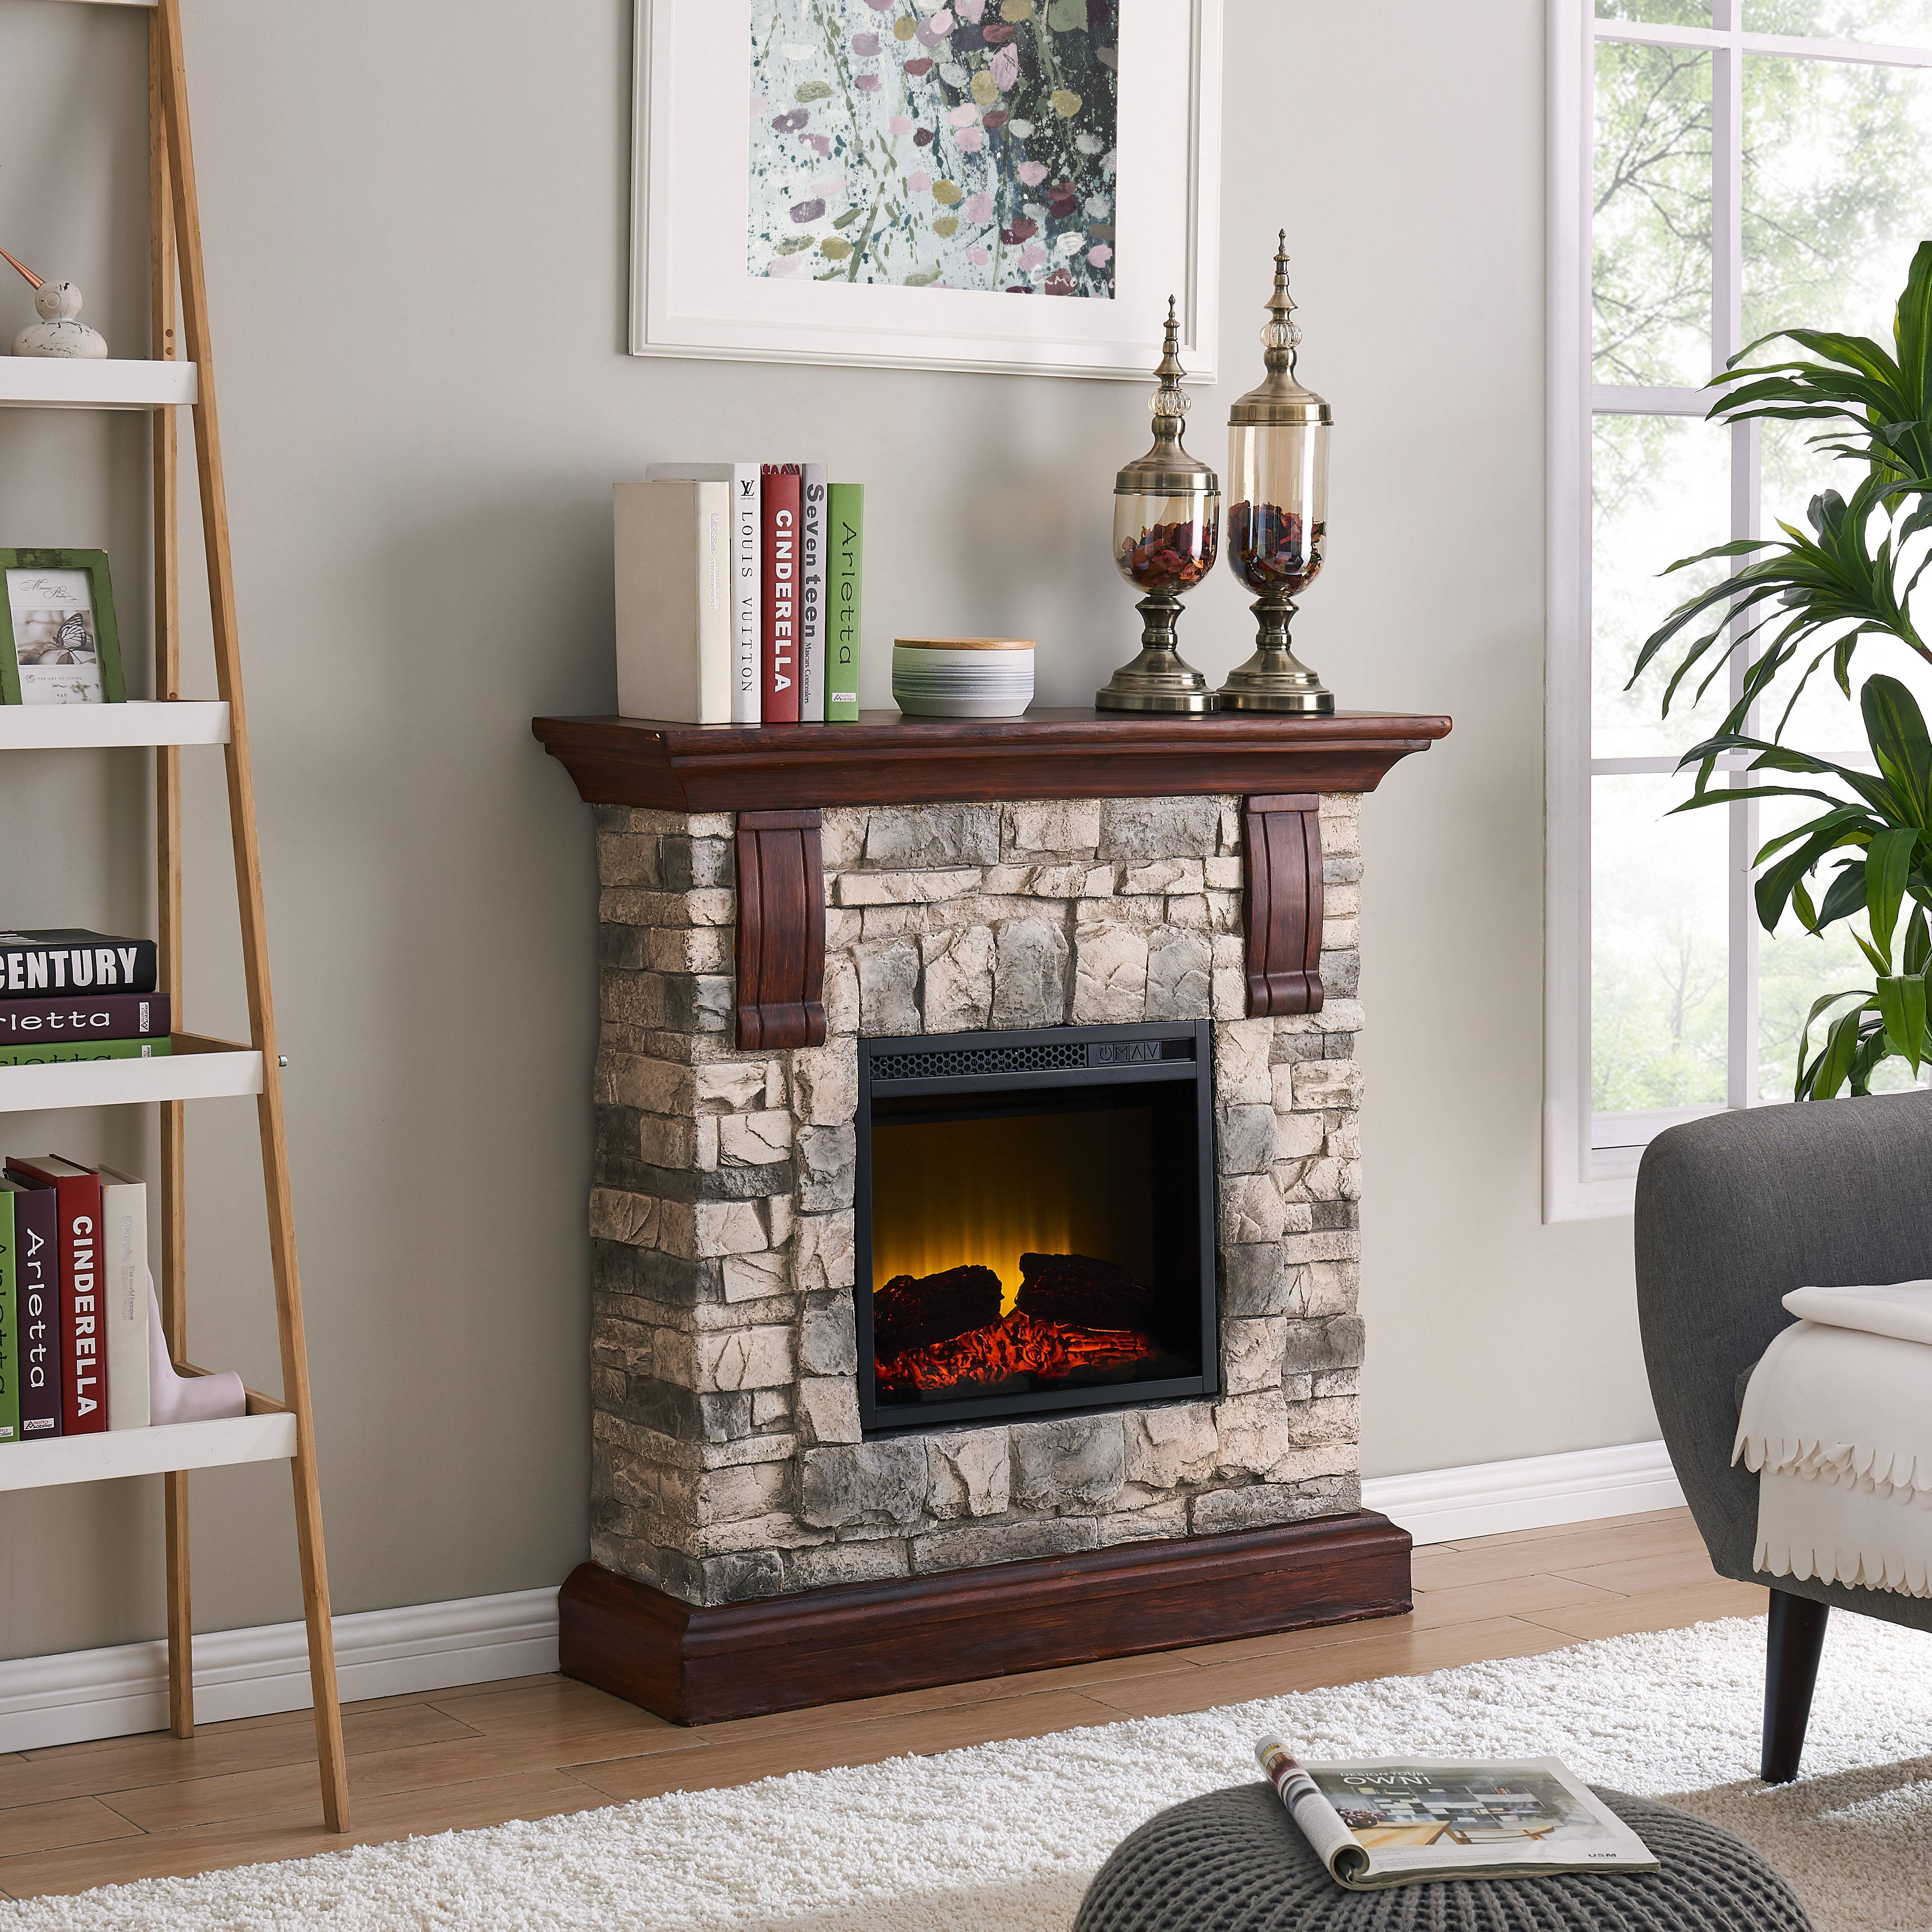 Electric Fireplace Insert with Heater Luxury 40 Inch Electric Fireplace Insert